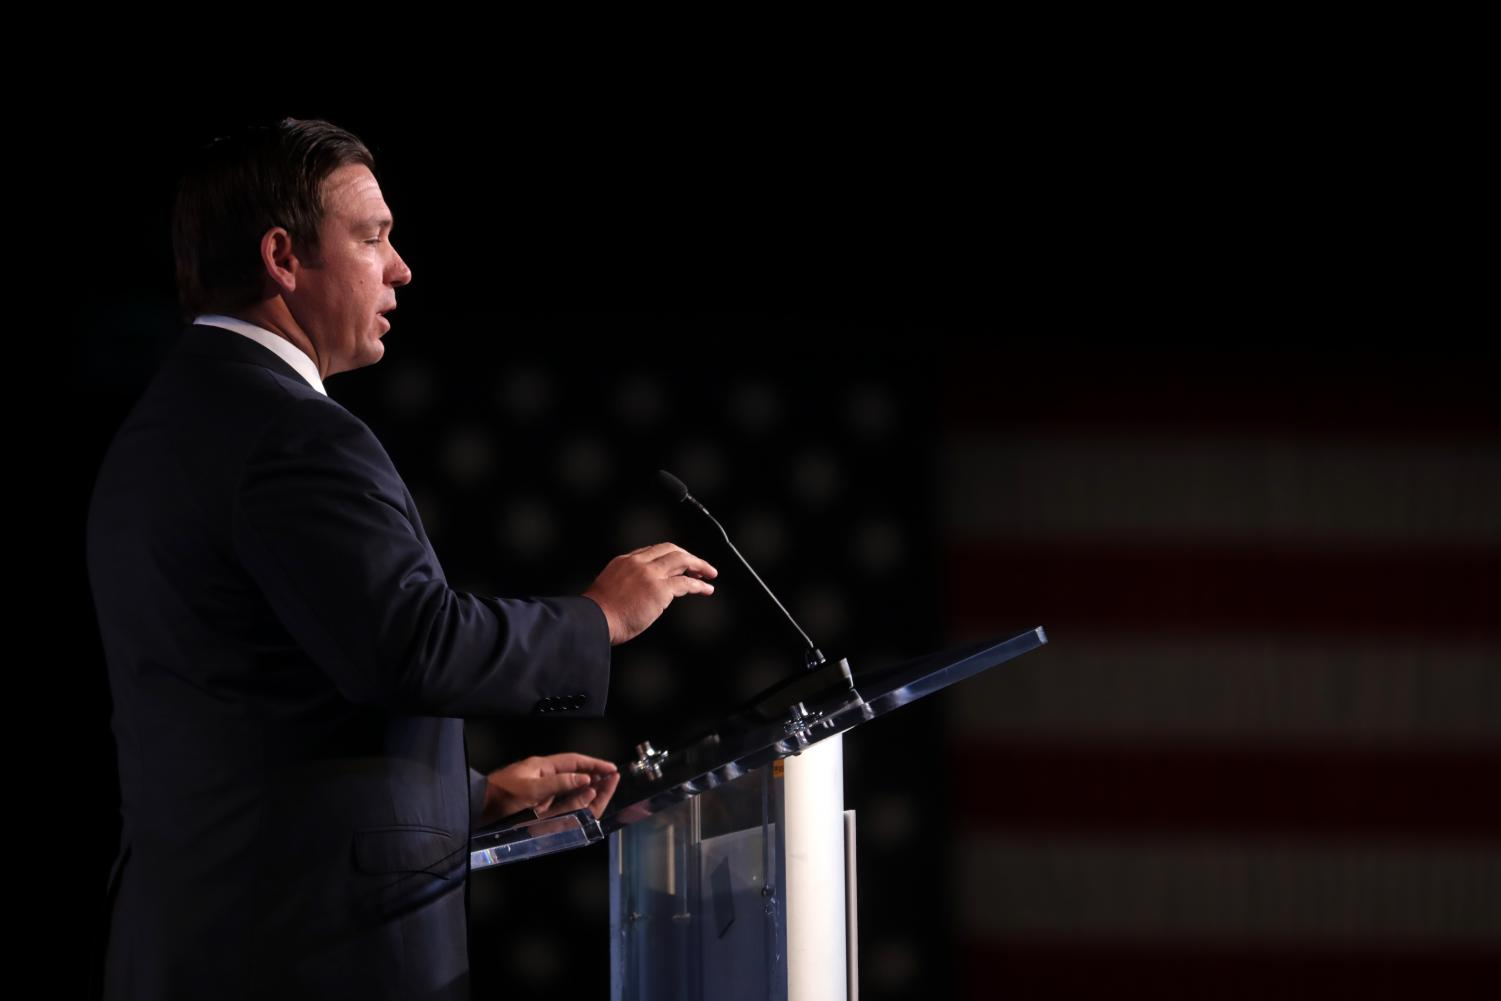 Ron DeSantis speaks at the 2018 Student Action Summit hosted by Turning Point USA at the Palm Beach County Convention Center.